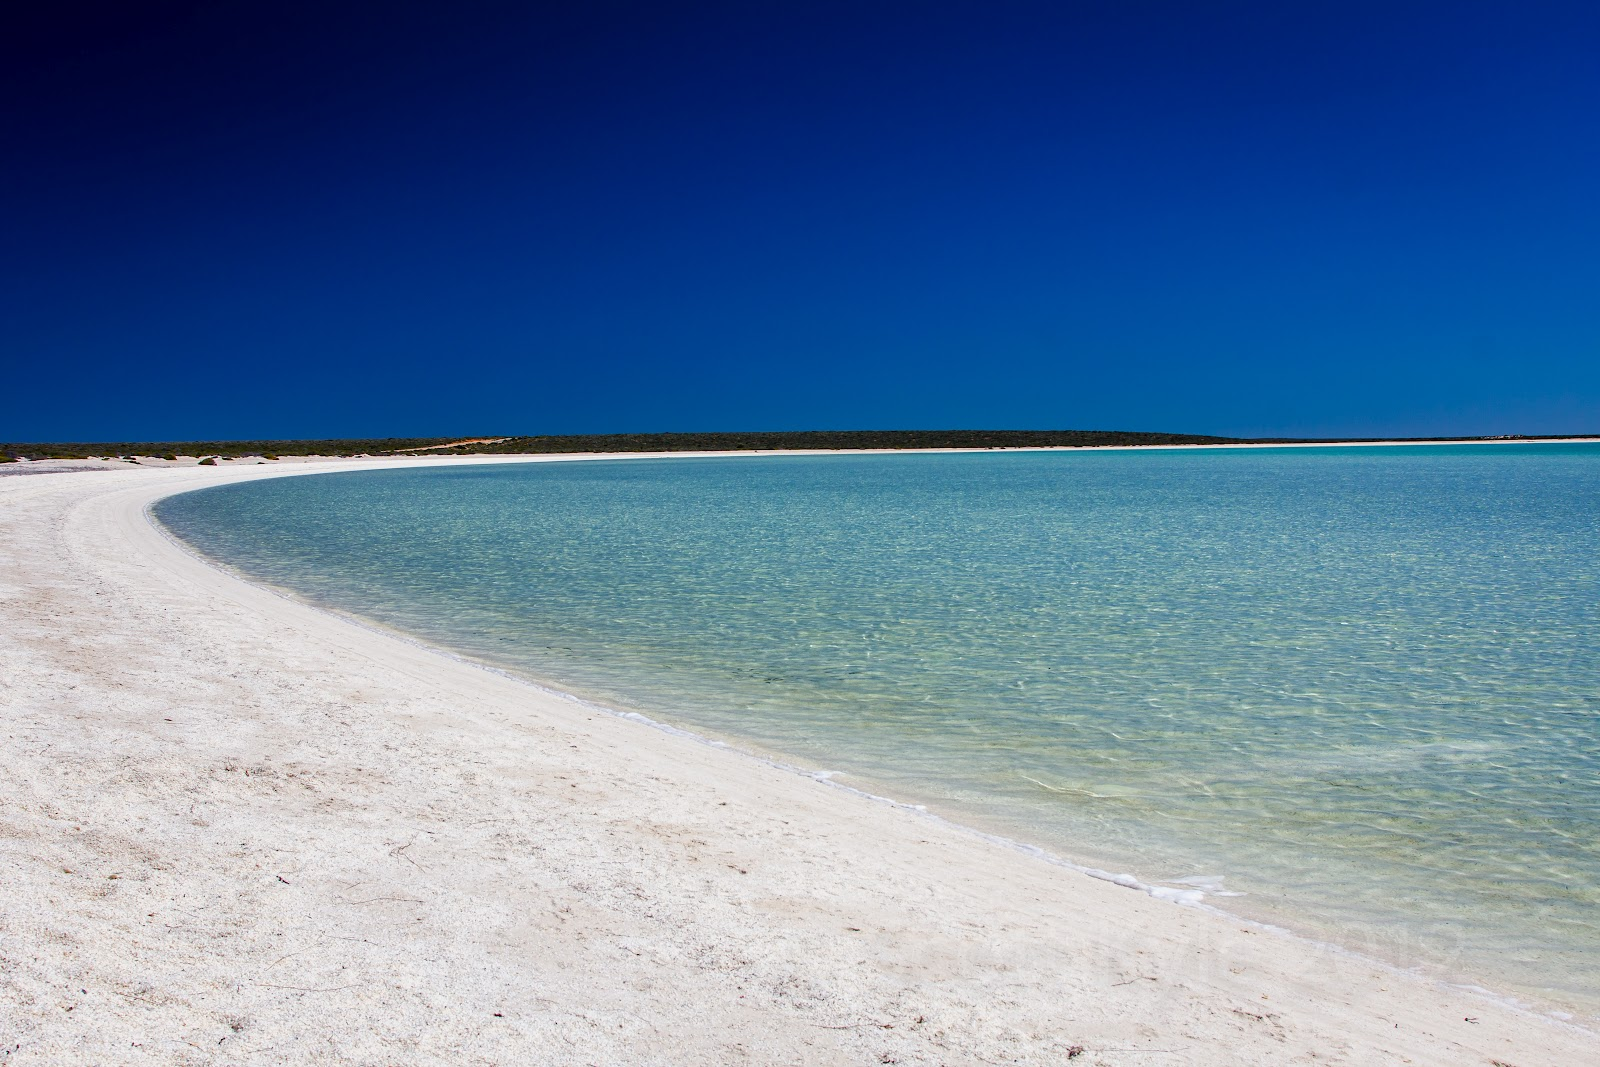 A Trip to Shark Bay & Monkey Mia in Western Australia